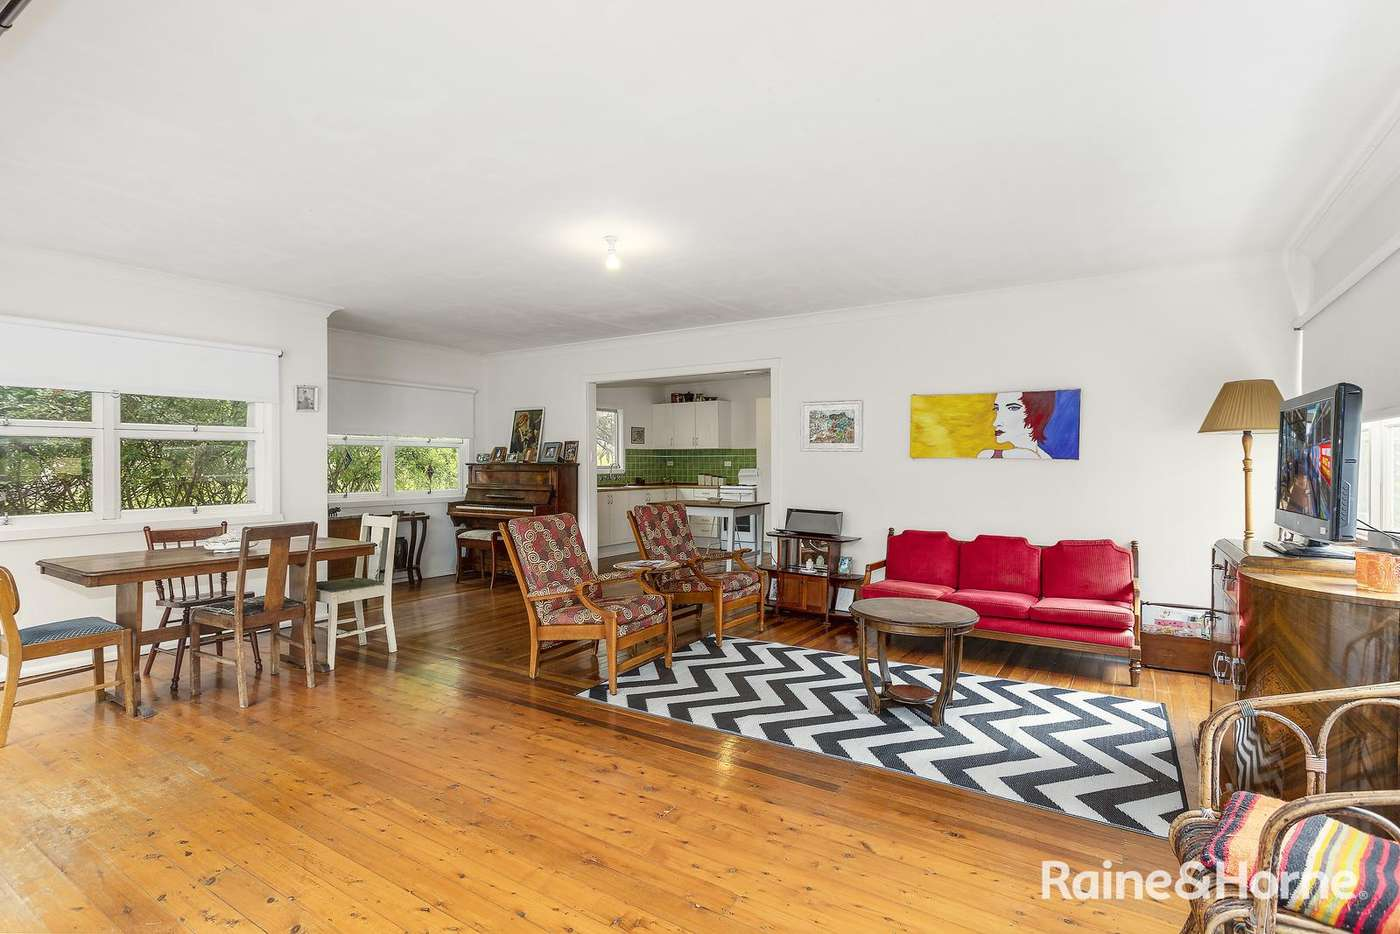 Fifth view of Homely house listing, 67 Sunrise Ave, Halekulani NSW 2262